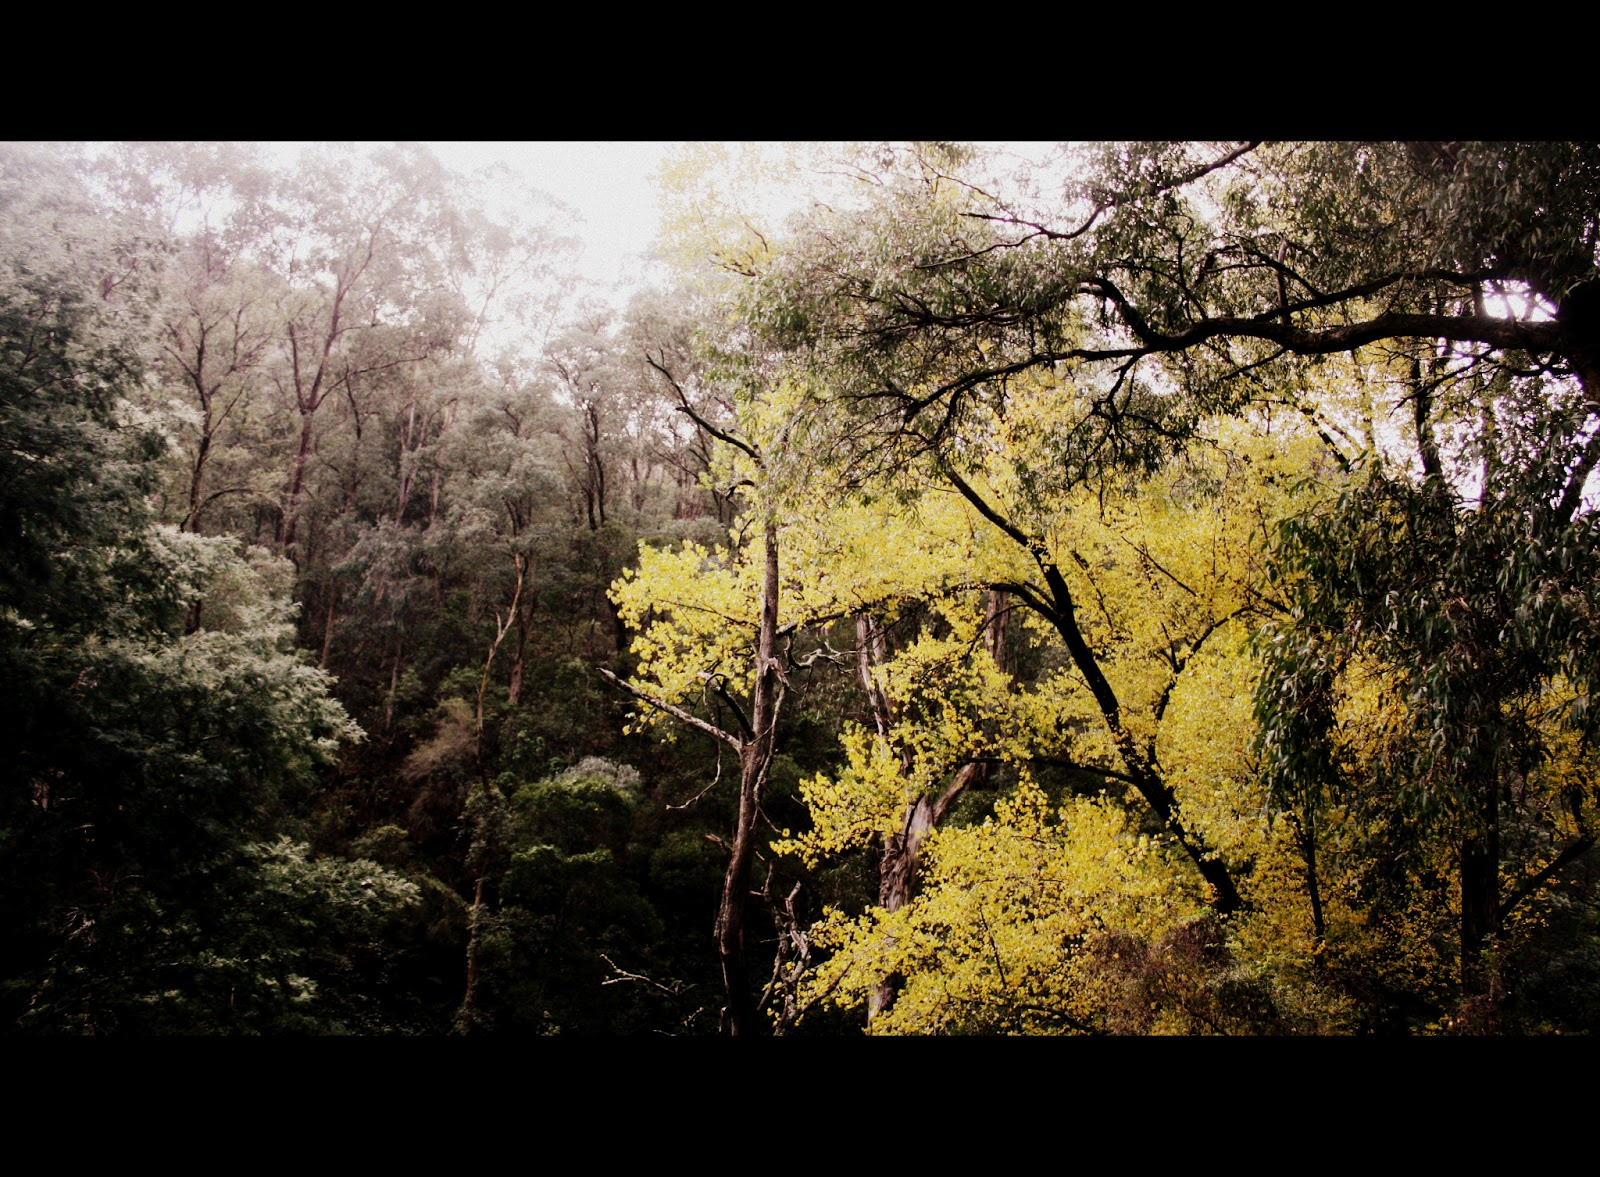 Camping at North Gardens, Walhalla | Camping with the Morris Tribe